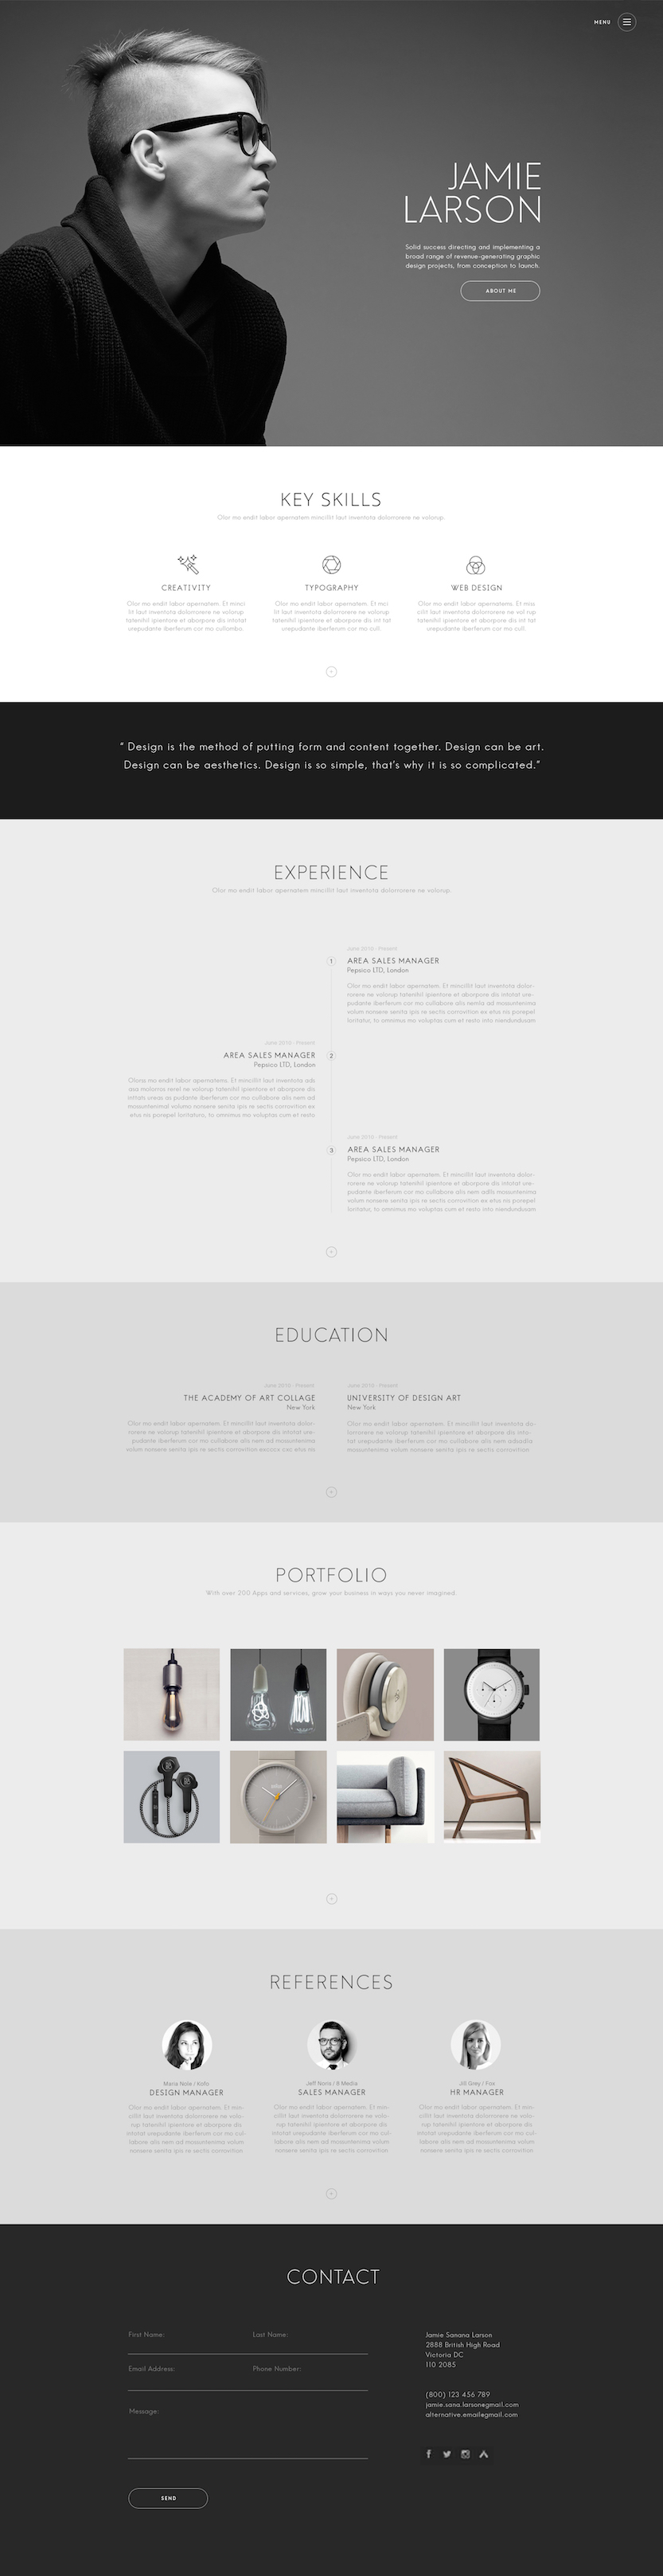 designer is a polished resume theme that s easy to set up and designer is a polished resume theme that s easy to set up and easier to customize